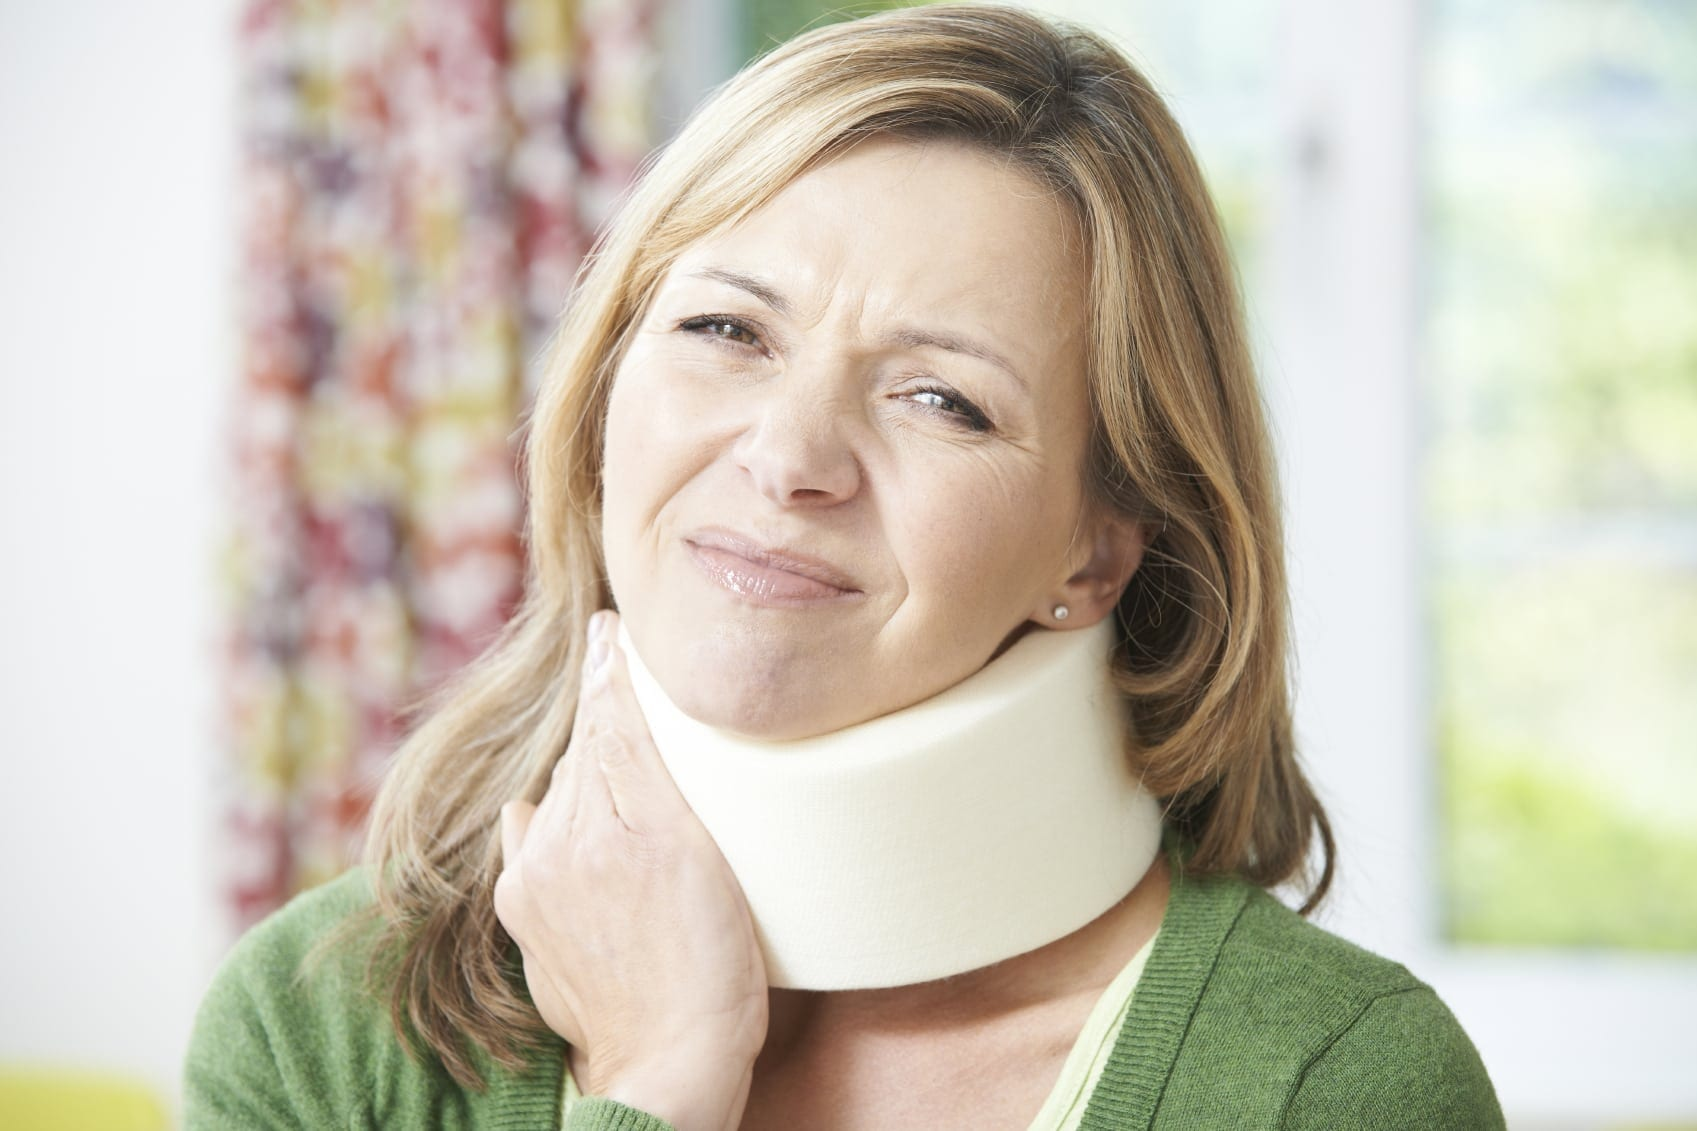 Woman In A Neck Brace Experiencing Neck Pain Stock Photo